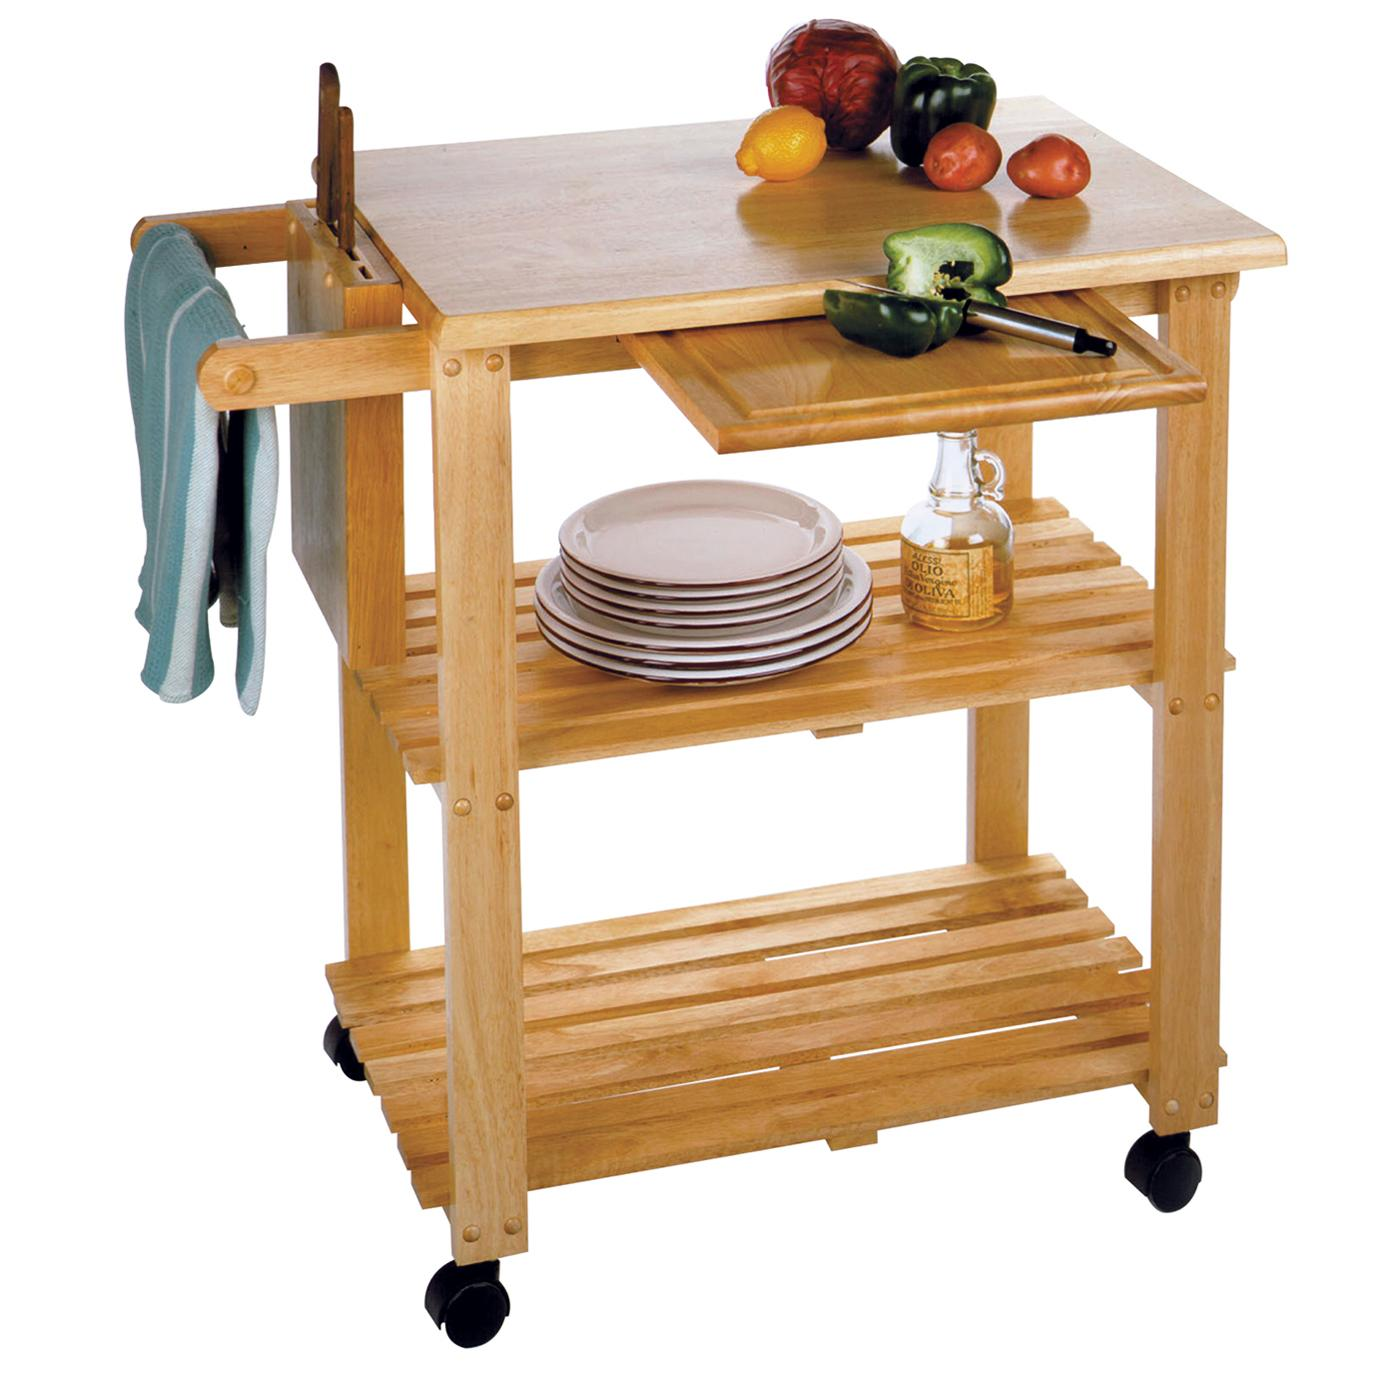 utility kitchen cart inexpensive decor furniture home goods appliances athletic gear fitness